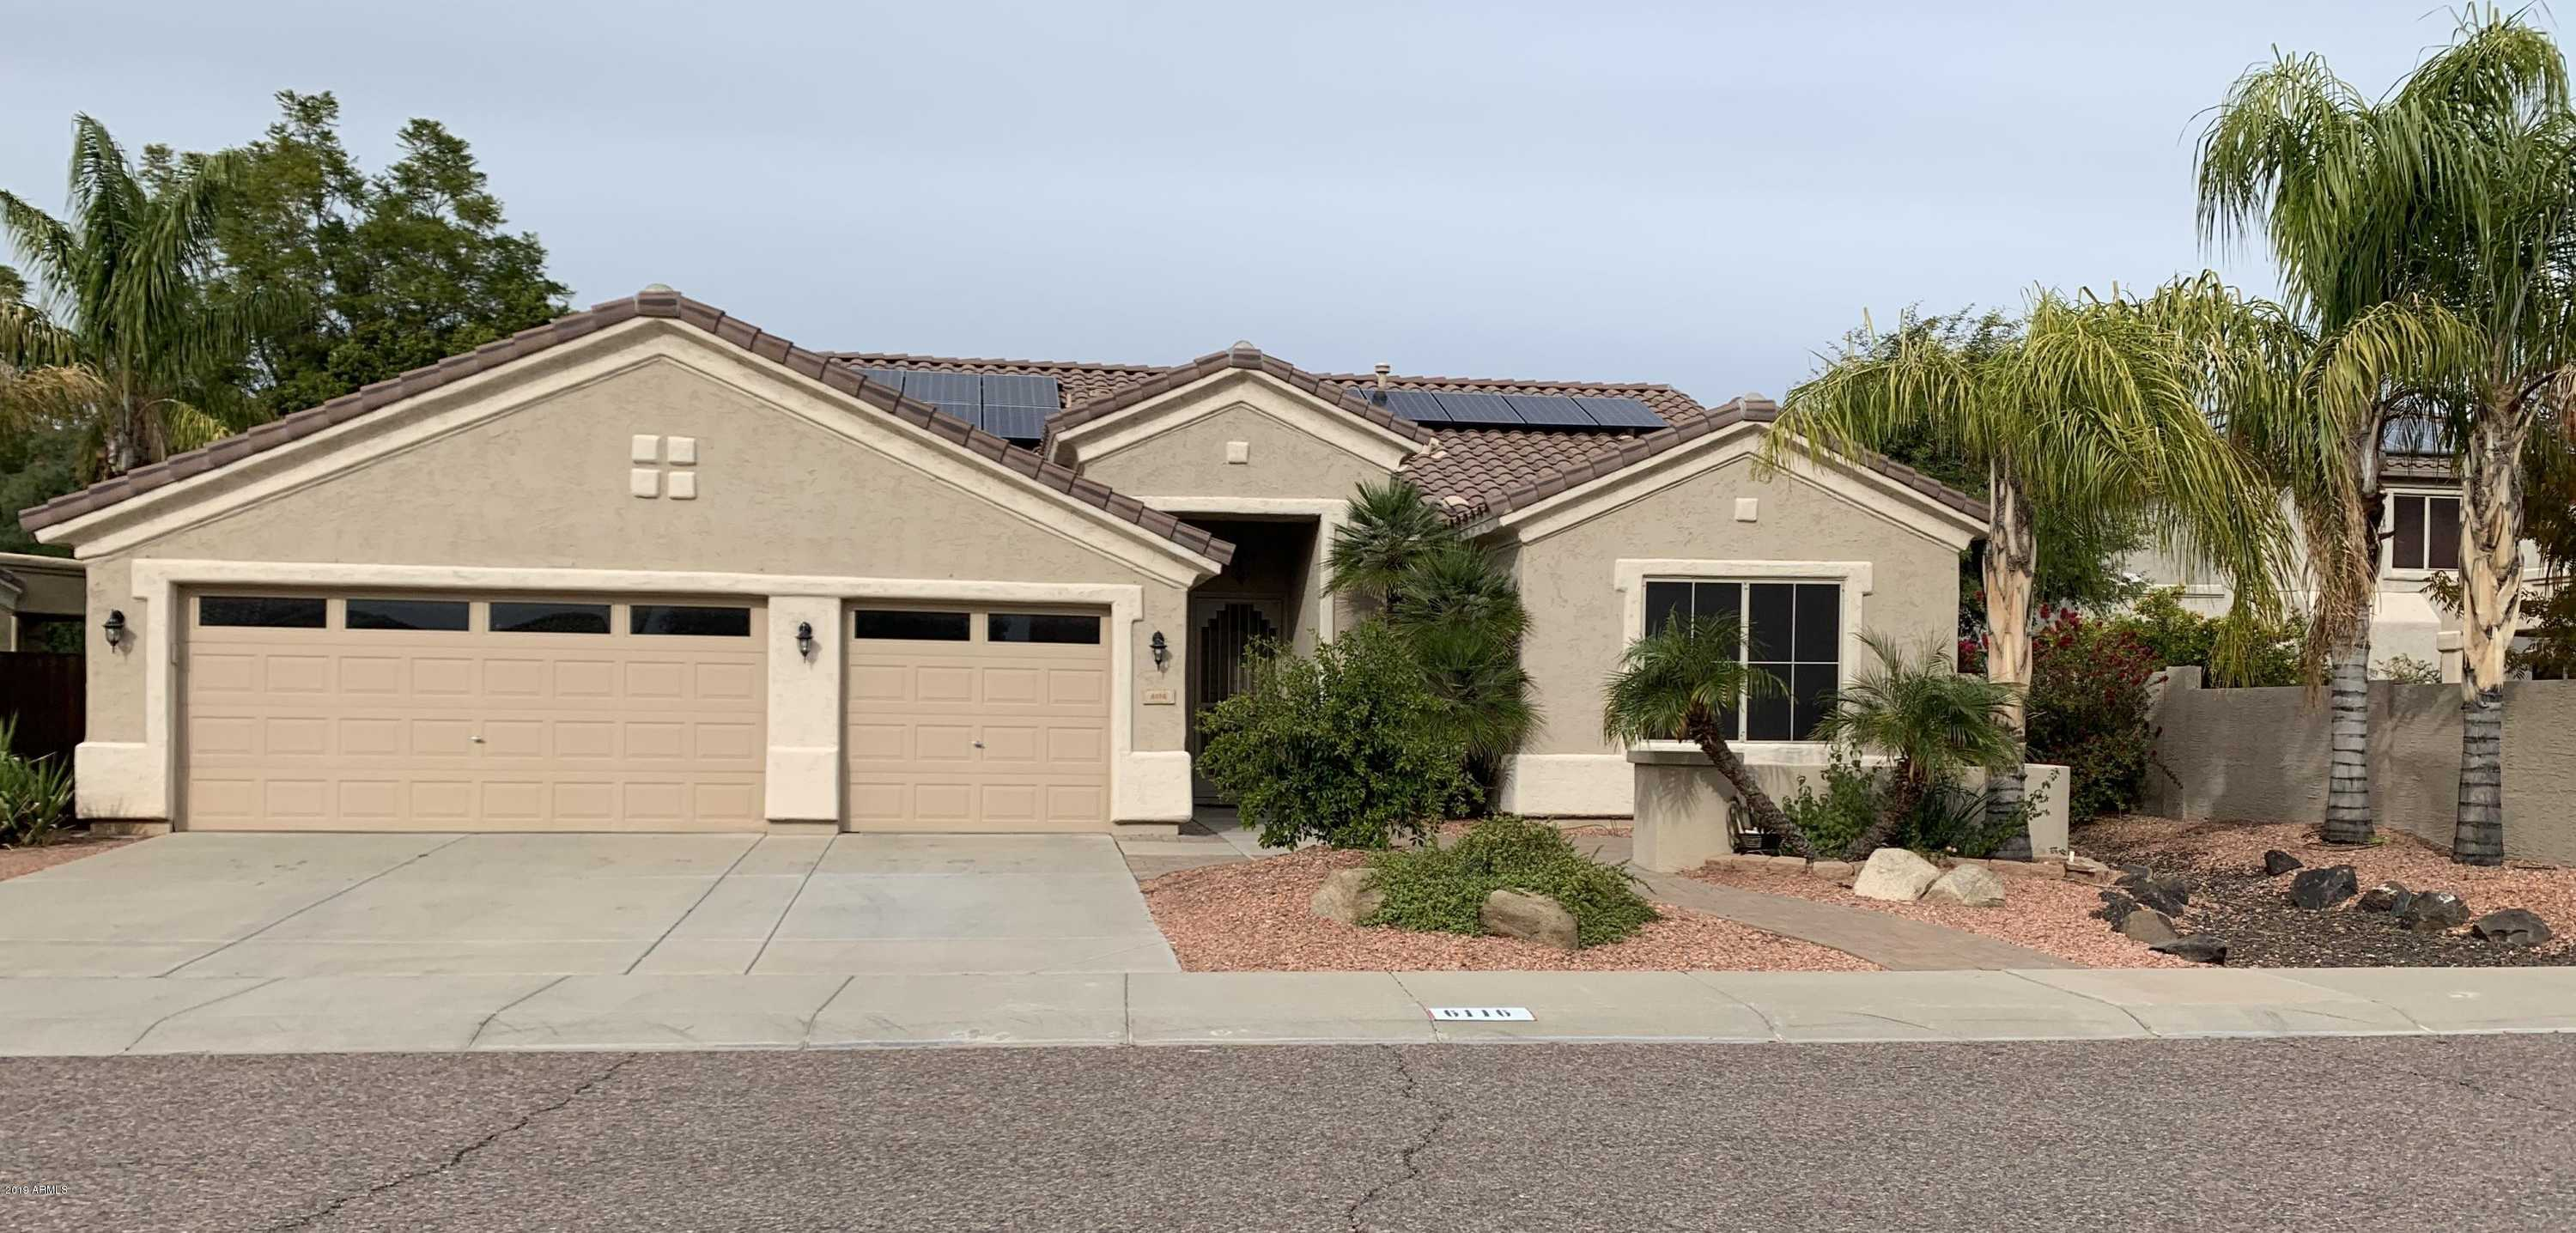 $379,900 - 3Br/2Ba - Home for Sale in Highlands At Arrowhead Ranch 3, Glendale